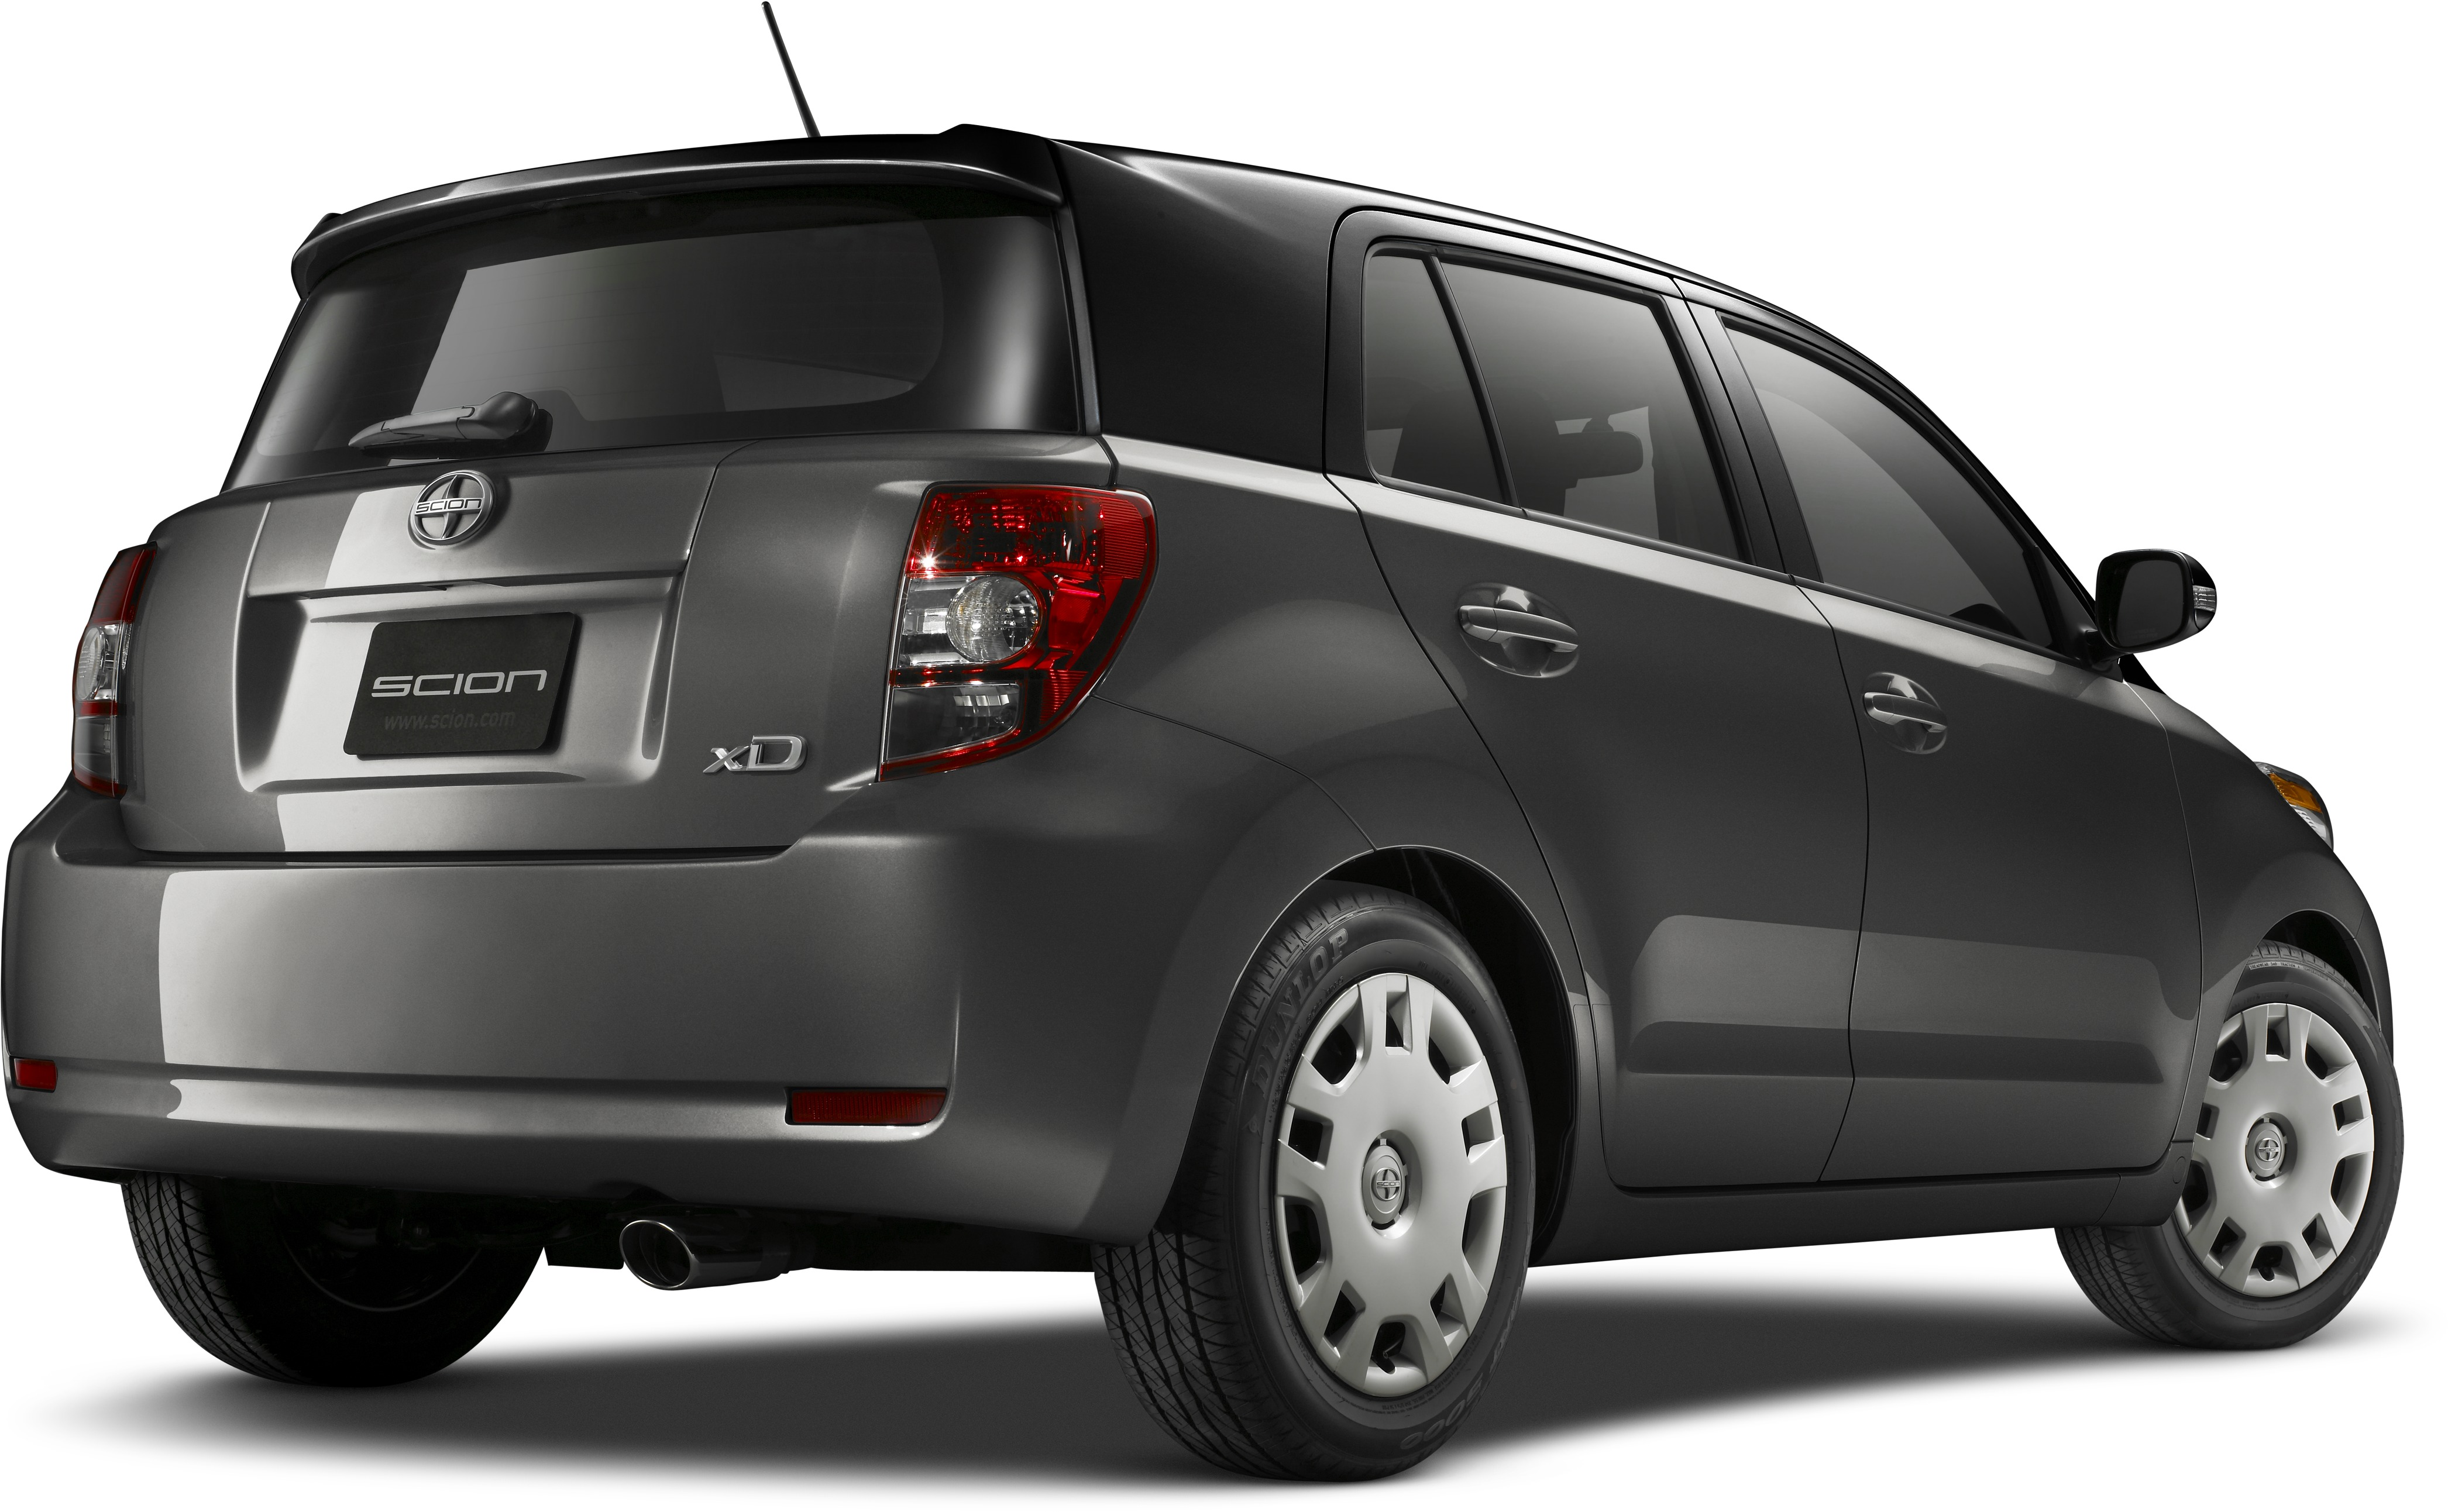 Scion xD #5